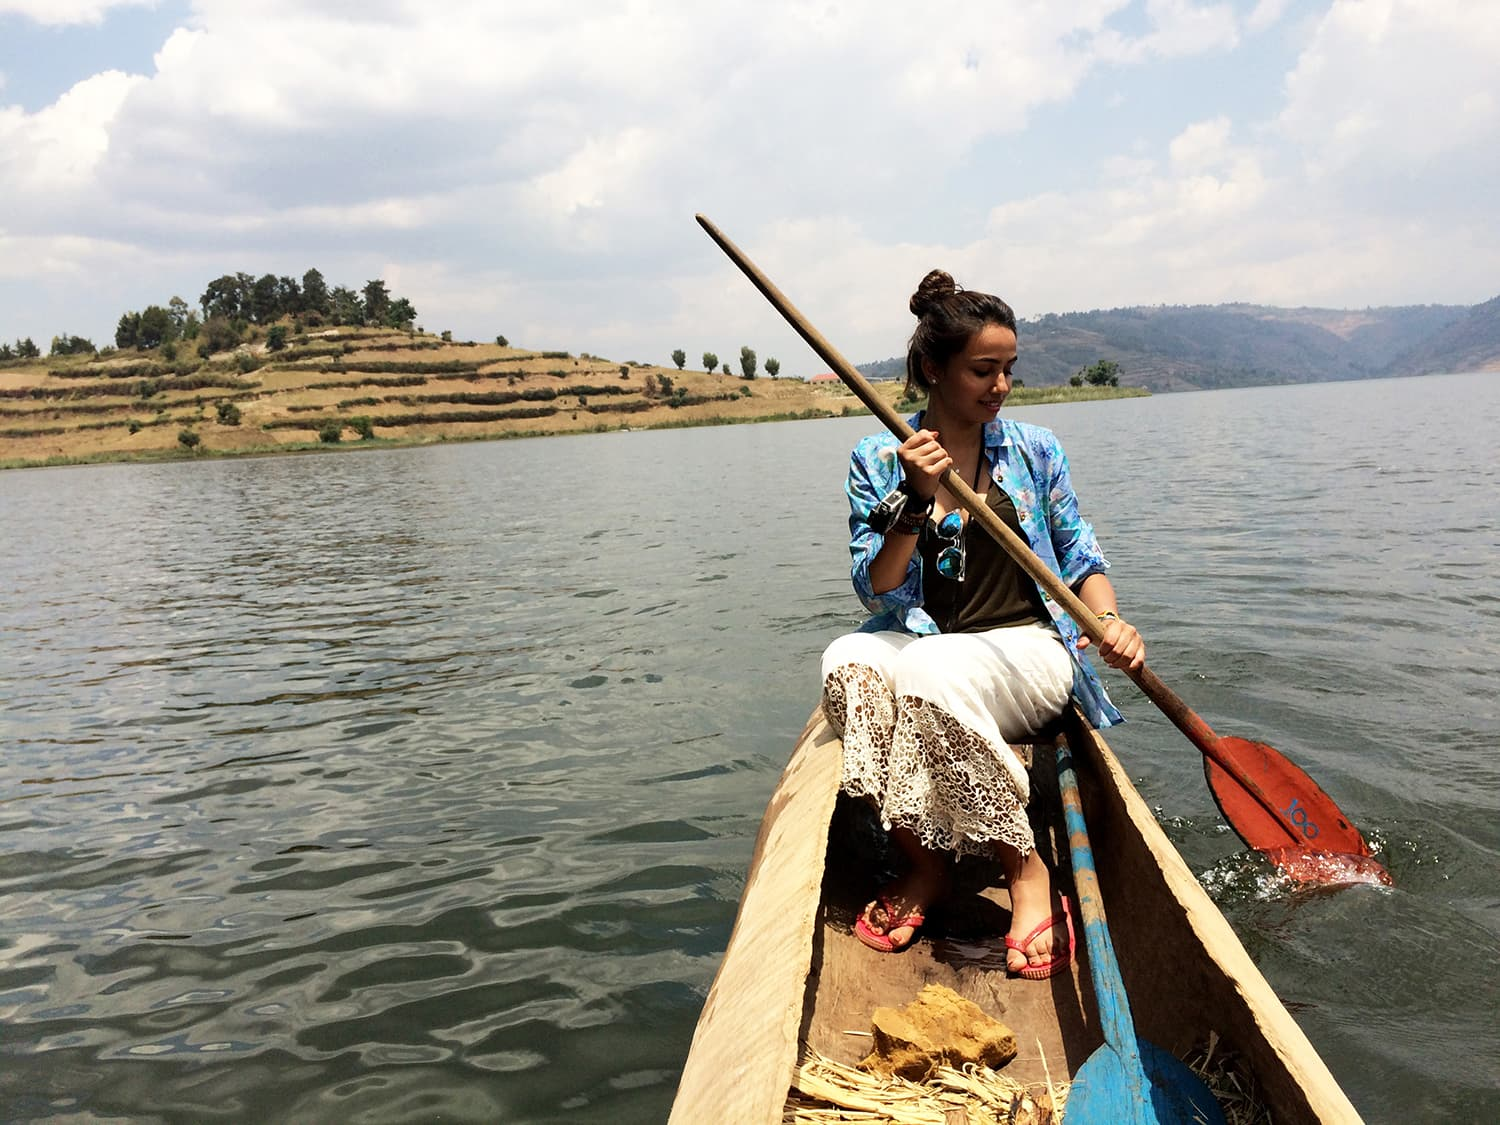 Canoeing on the bewildering Lake Bunyonyi, Uganda. -All photos by author